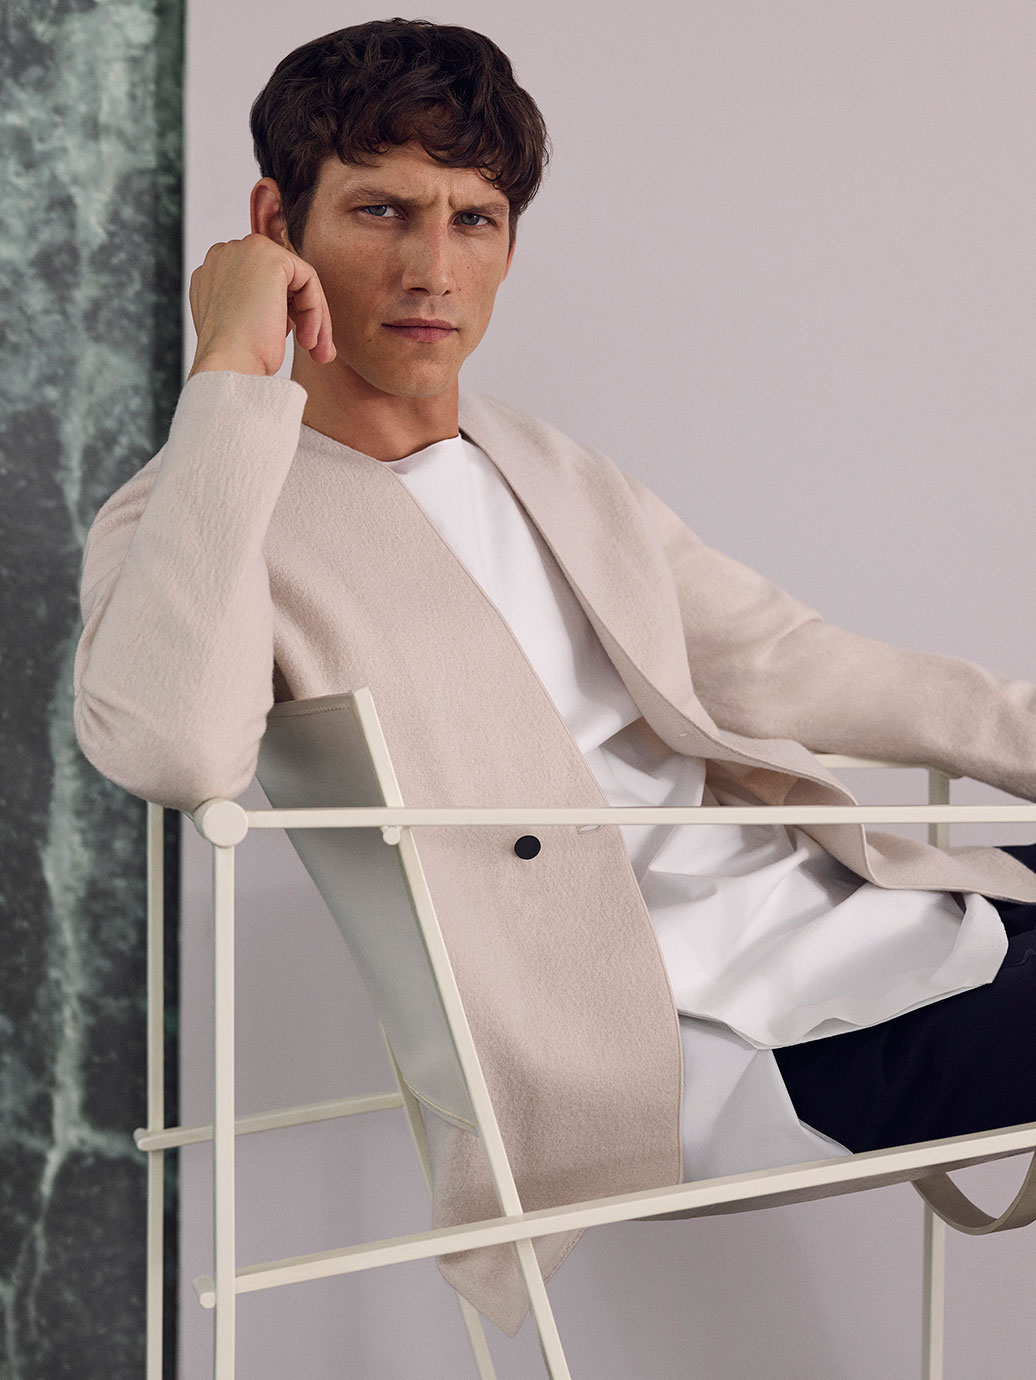 Double-breasted wool cardigan , £89  Round-neck shirt , £59  Drawstring tailored trousers , £79